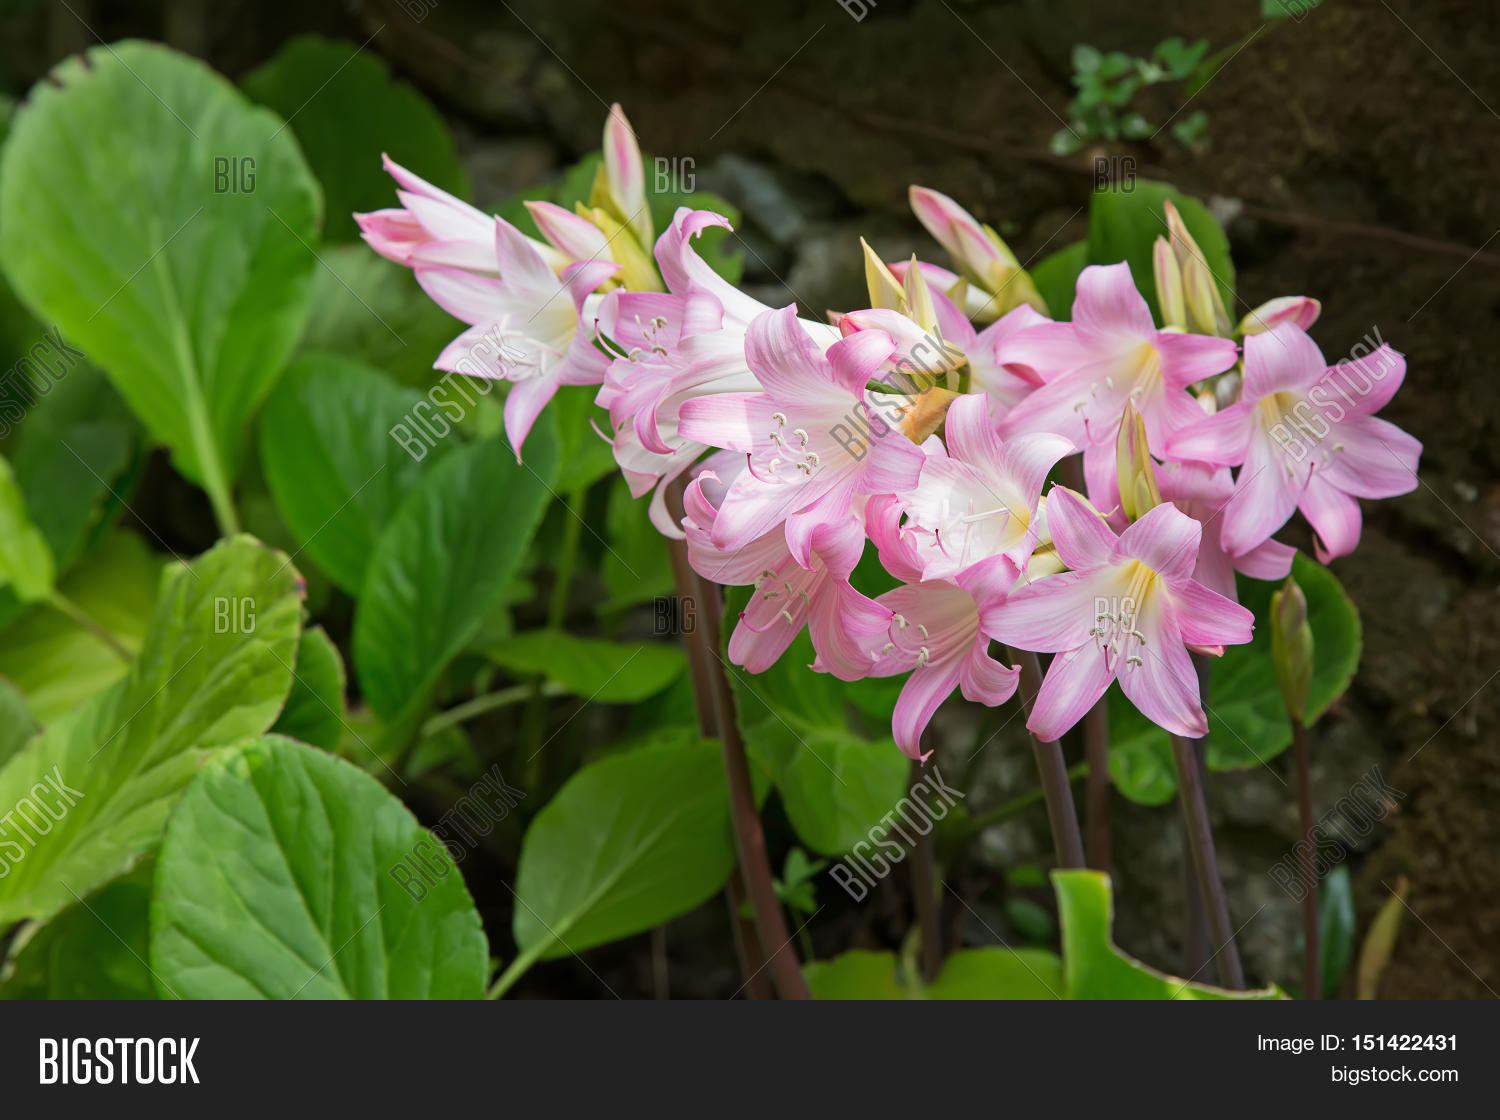 Pale pink white flower image photo free trial bigstock pale pink and white flower of belladonna lily also called jersey lily naked lady mightylinksfo